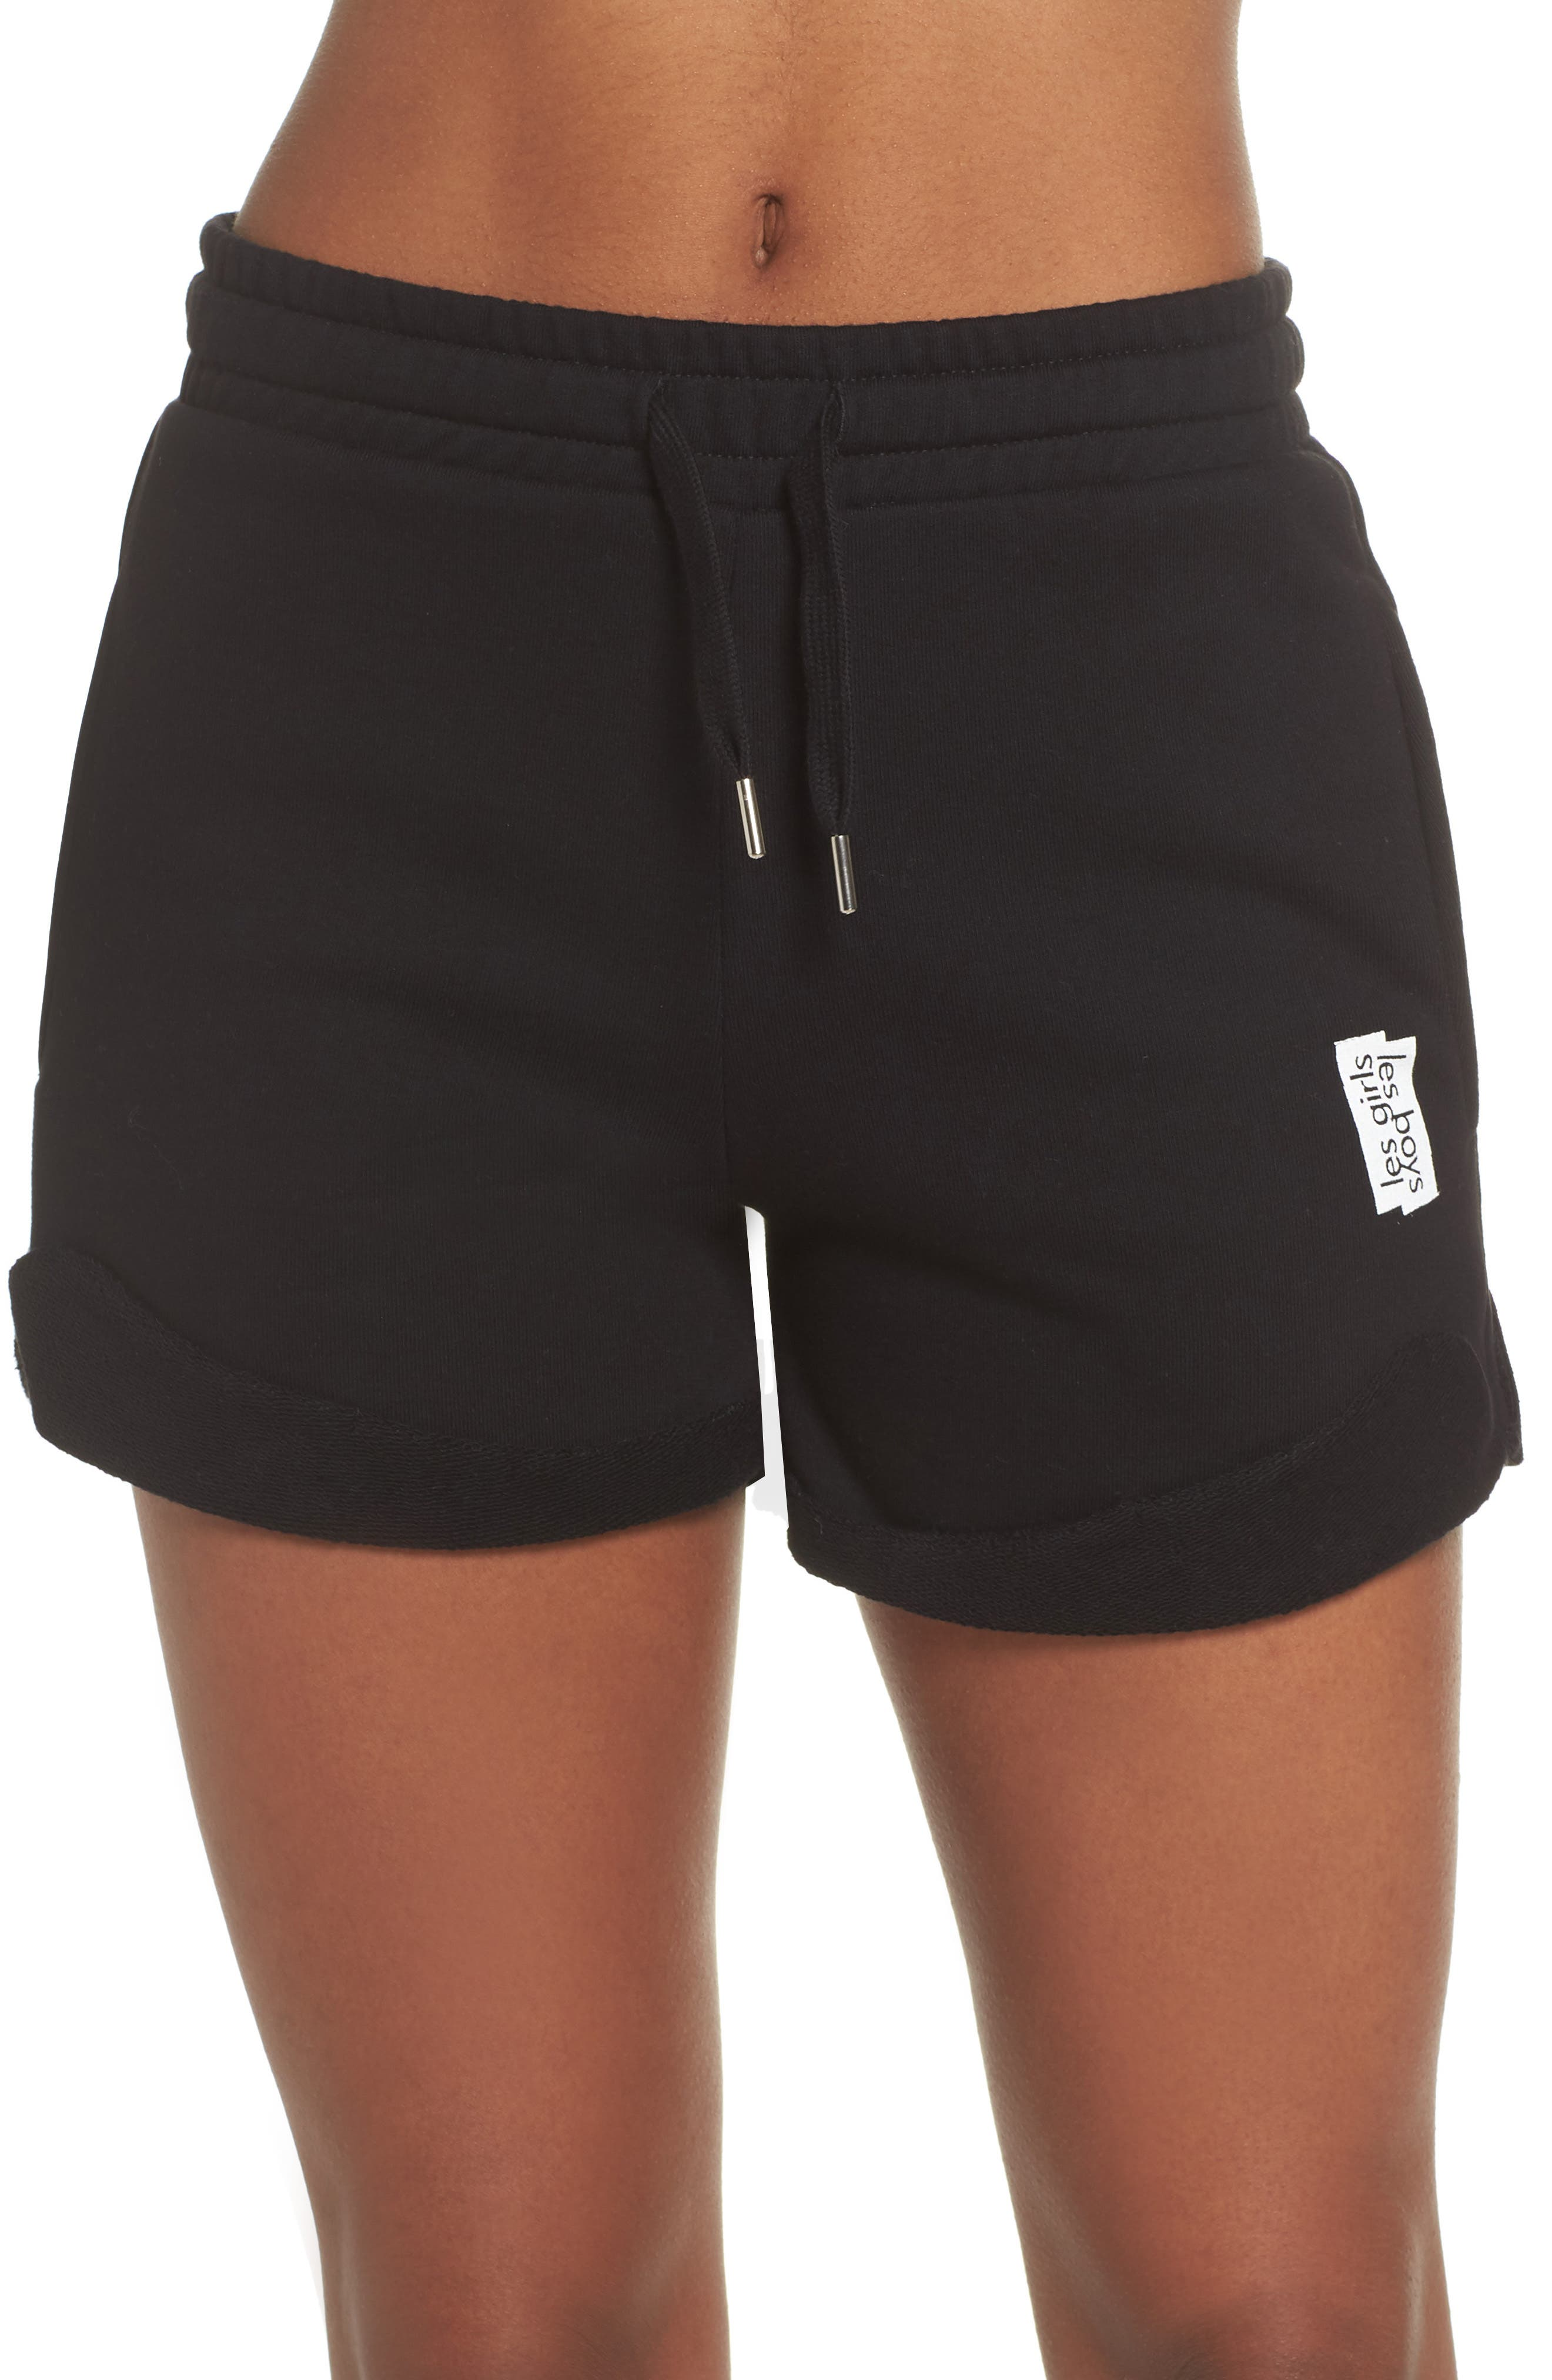 French Terry High Waist Shorts,                         Main,                         color, Black